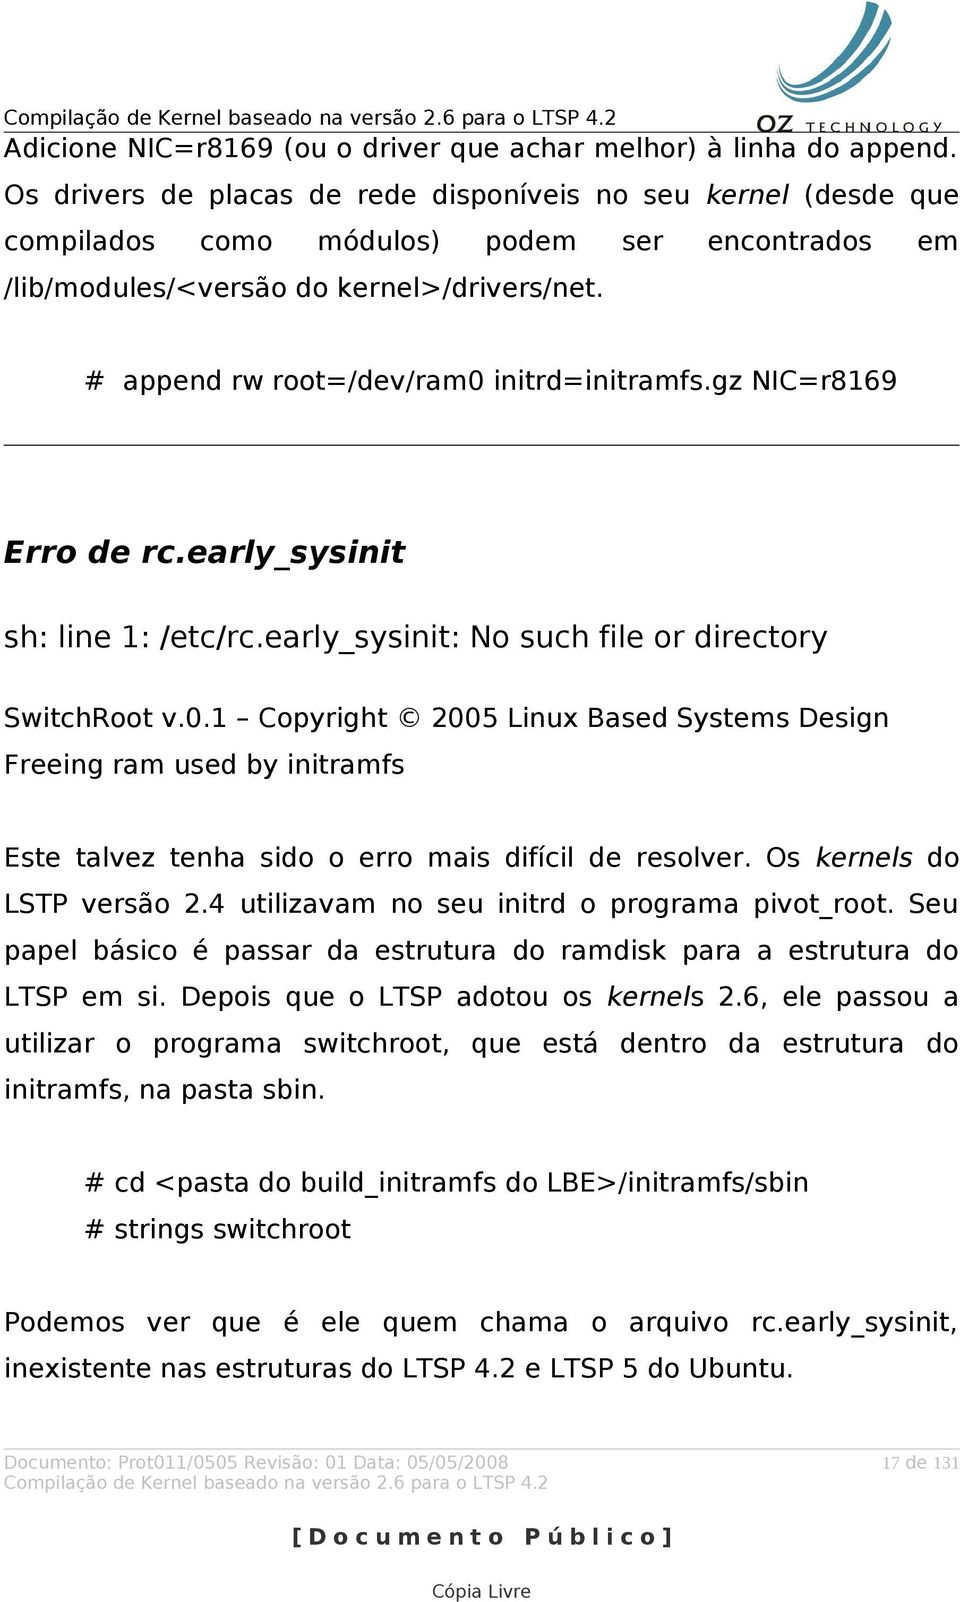 append rw root=/dev/ram0 initrd=initramfs.gz NIC=r8169 Erro de rc.early_sysinit sh: line 1: /etc/rc.early_sysinit: No such file or directory SwitchRoot v.0.1 Copyright 2005 Linux Based Systems Design Freeing ram used by initramfs Este talvez tenha sido o erro mais difícil de resolver.